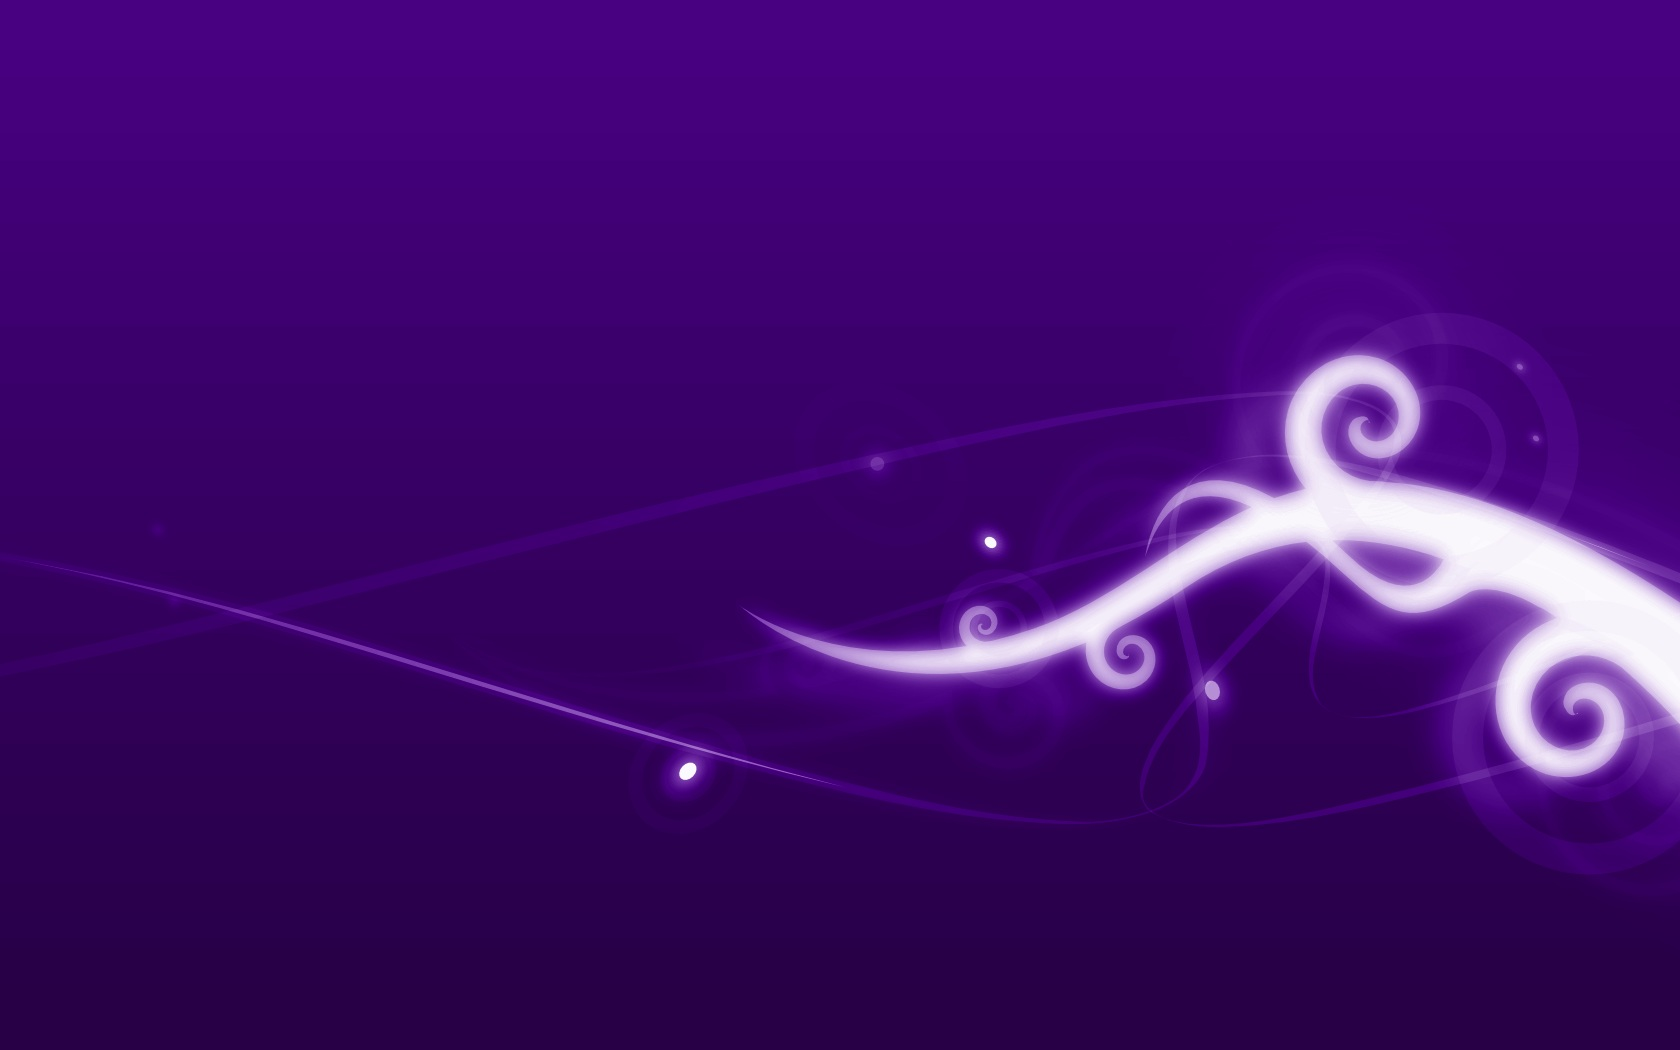 Download Purple Abstract Wallpaper 27695 1680x1050 Px High